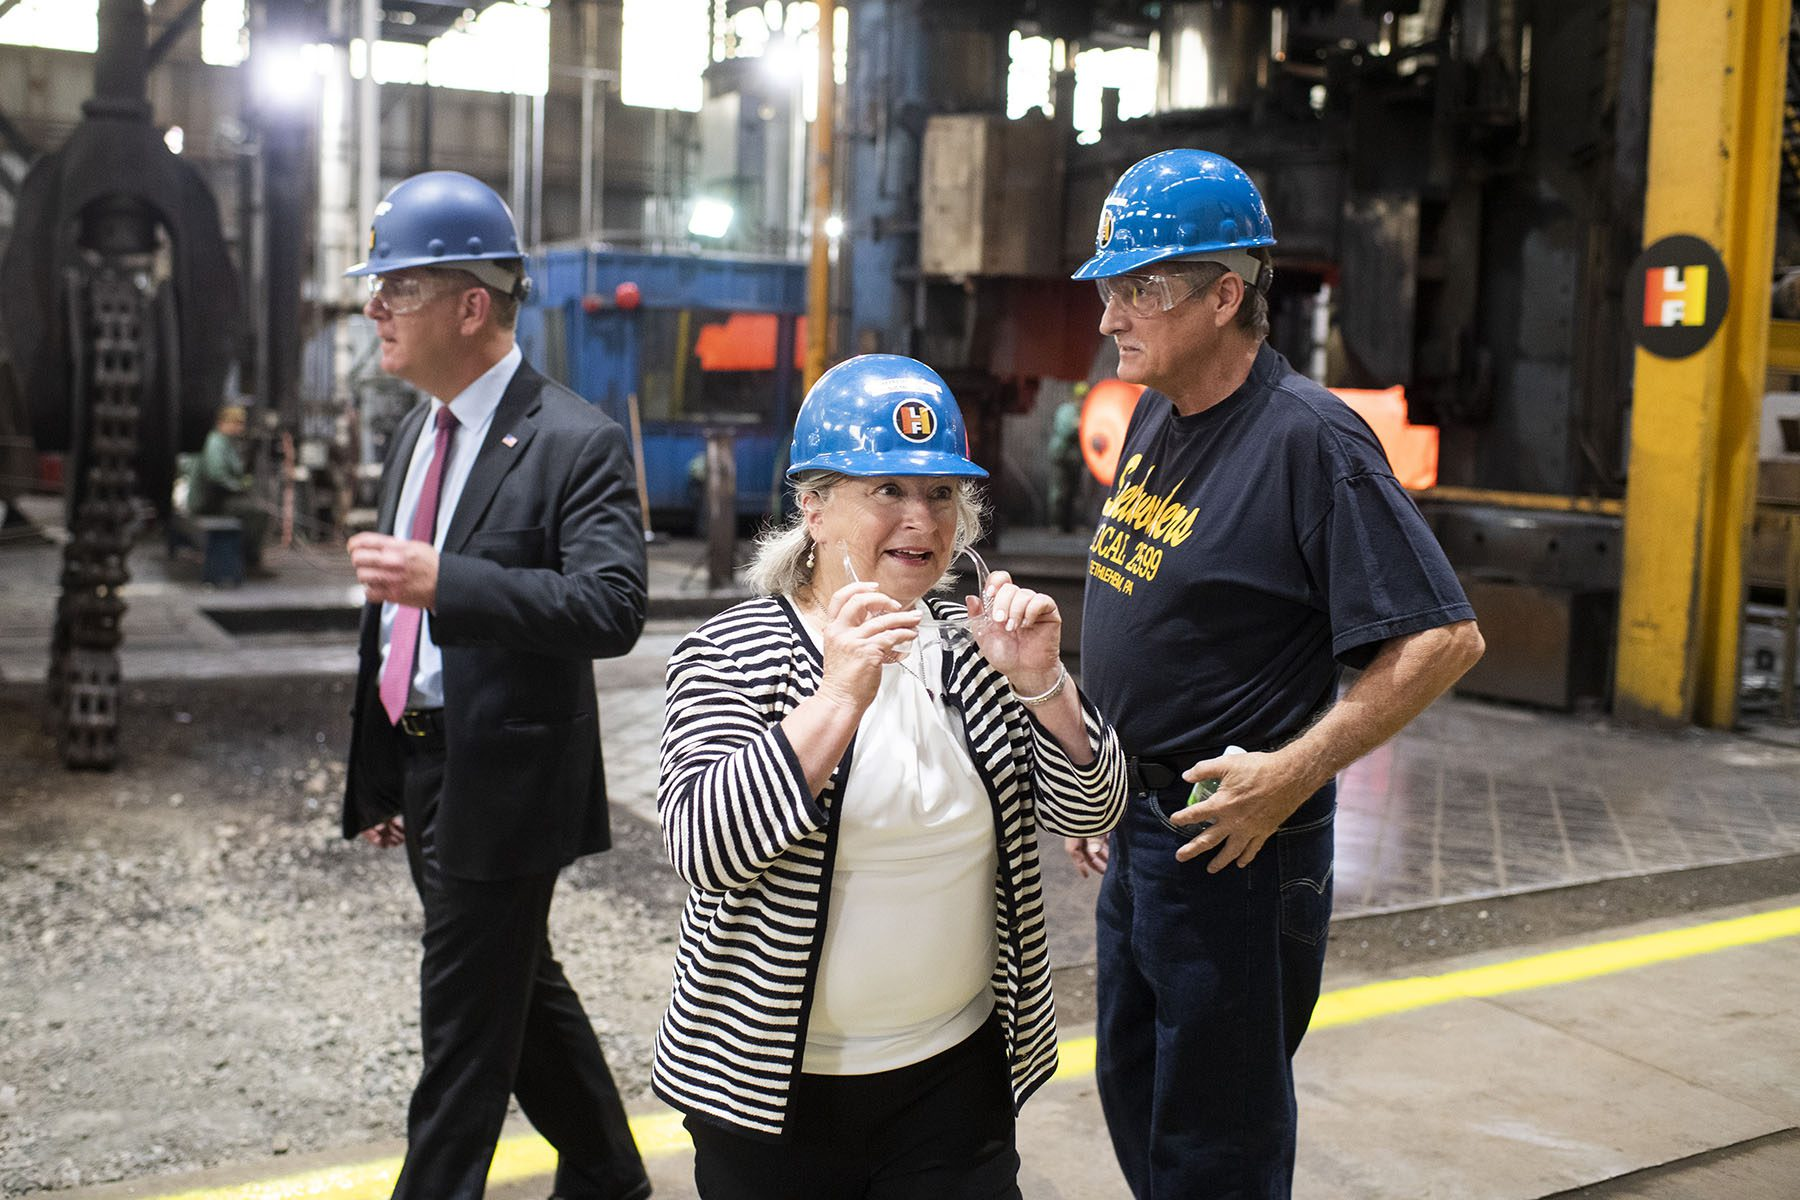 Rep. Susan Wild wears a hard hat and protective glasses while visiting a forge.